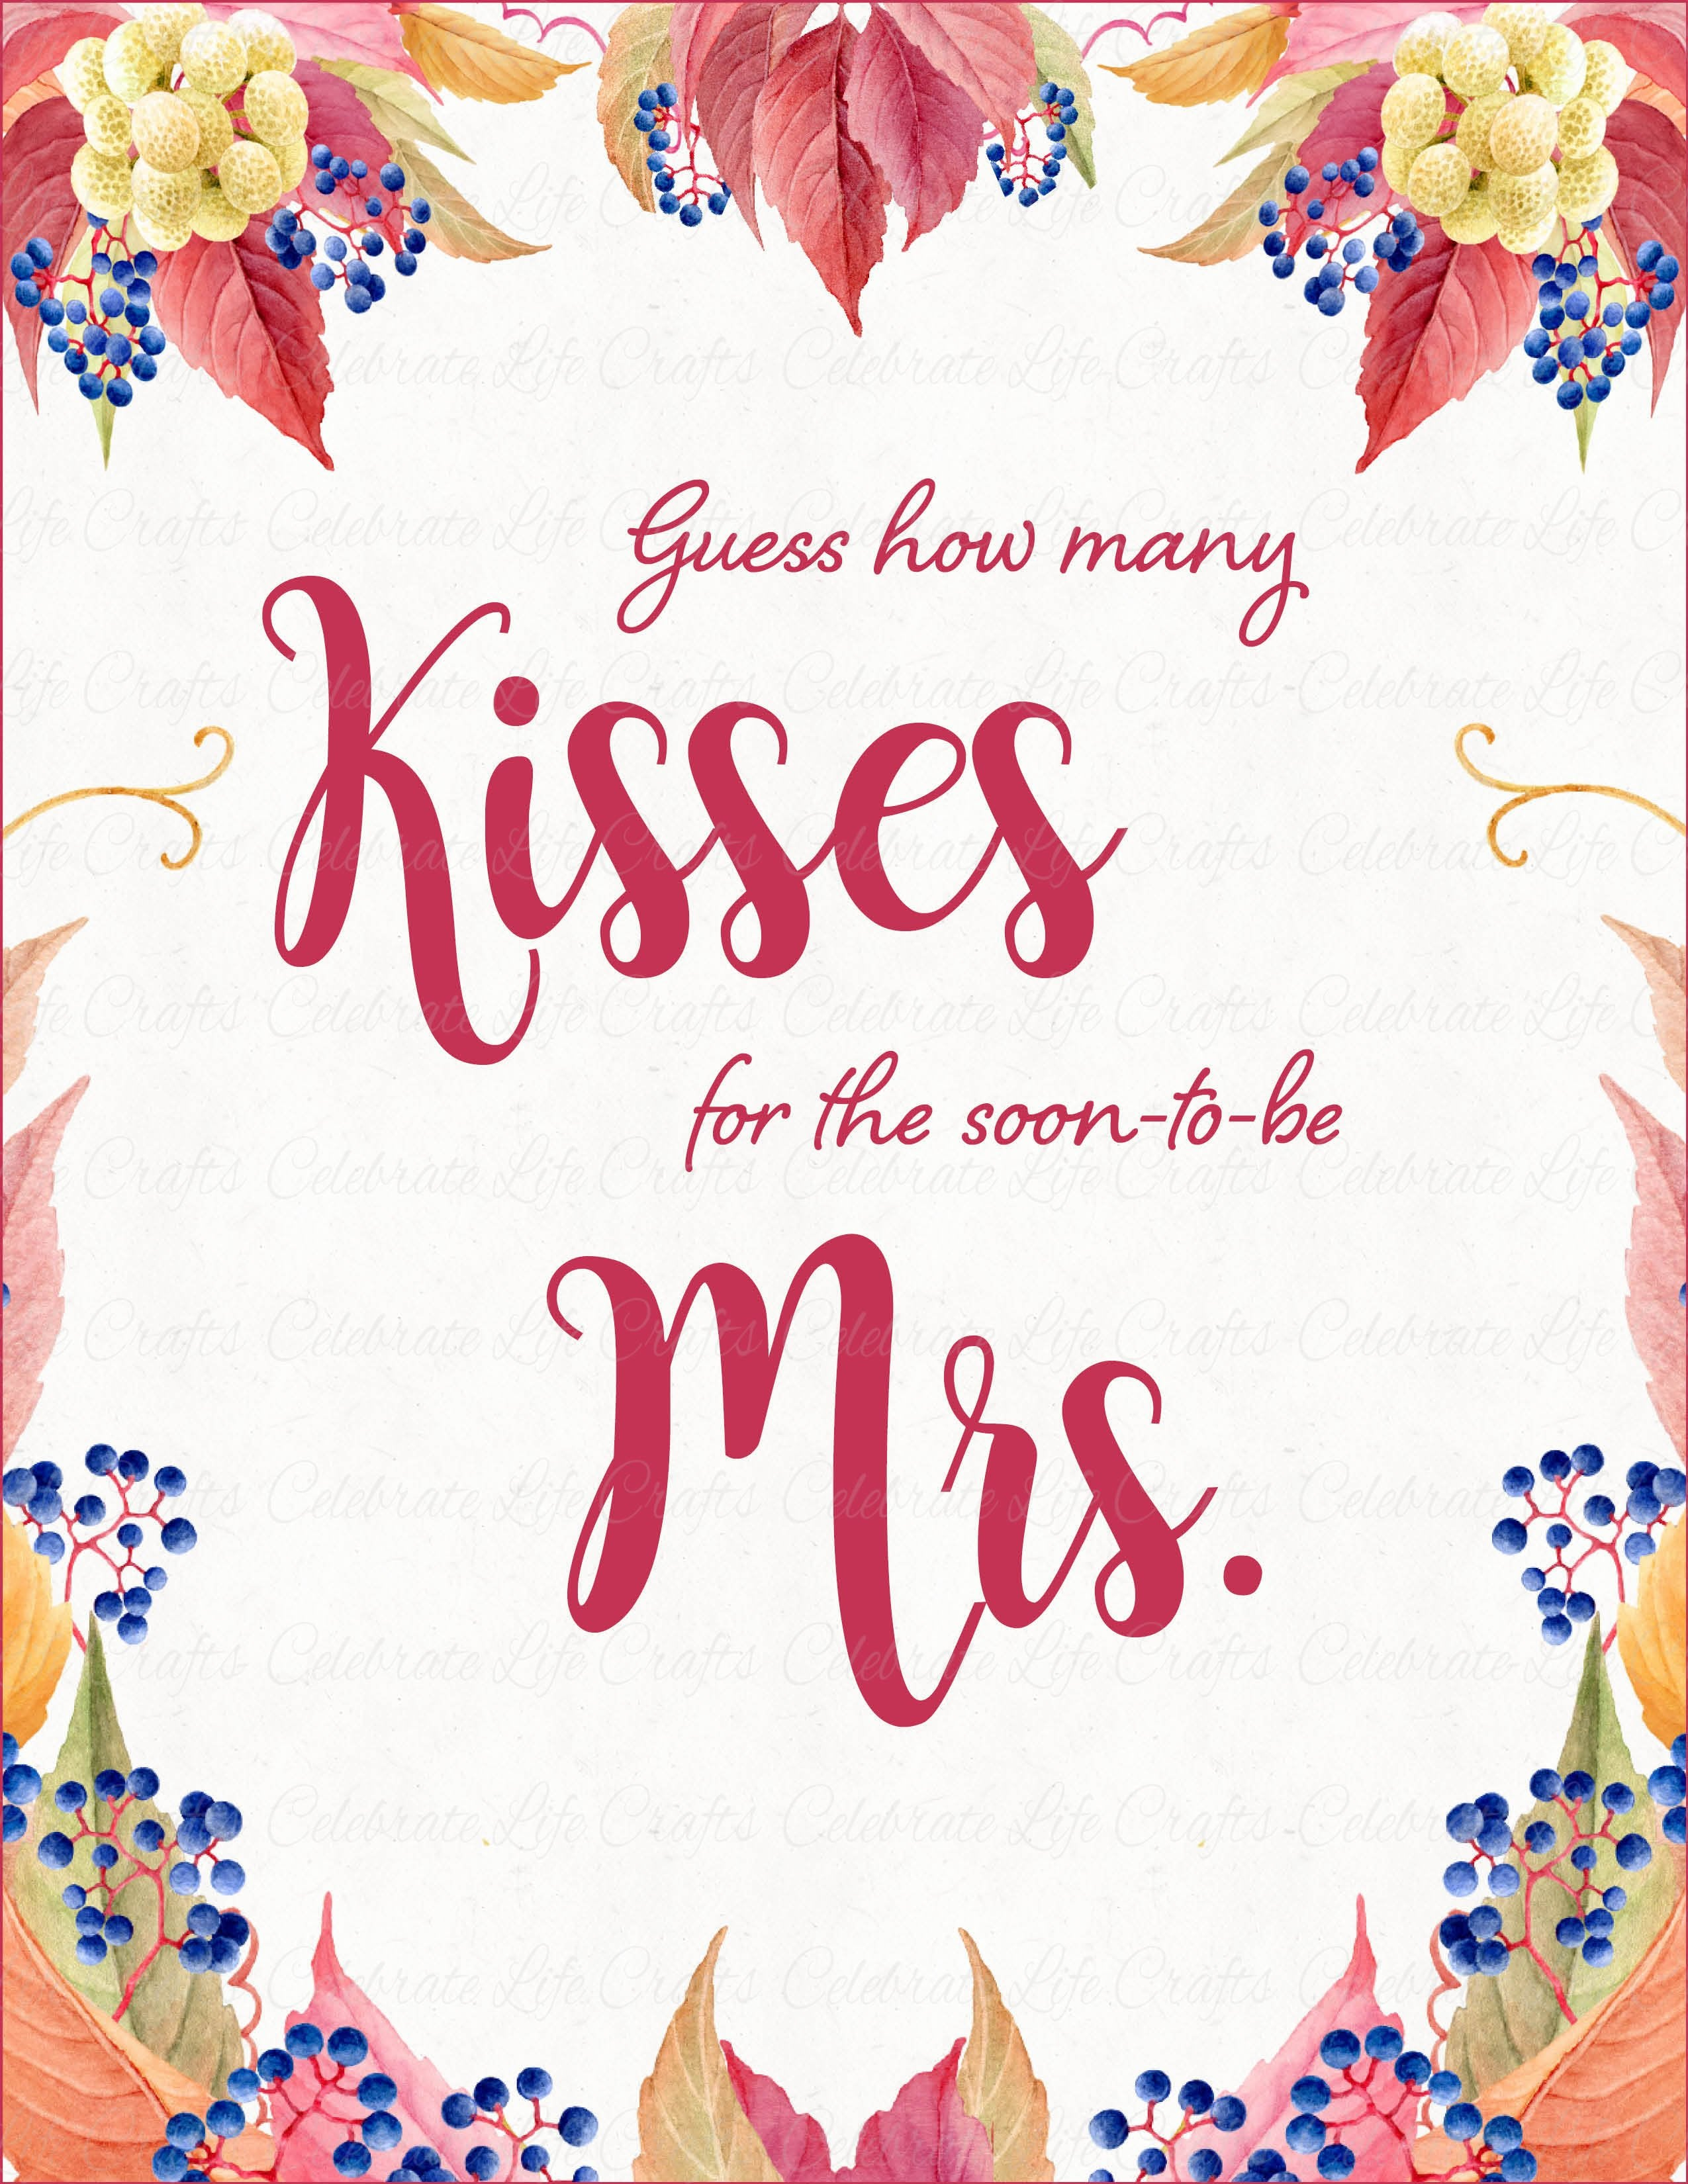 graphic relating to Guess Who Cards Printable called How Countless Kisses Drop Bridal Shower Sport Indicator - Slipping inside